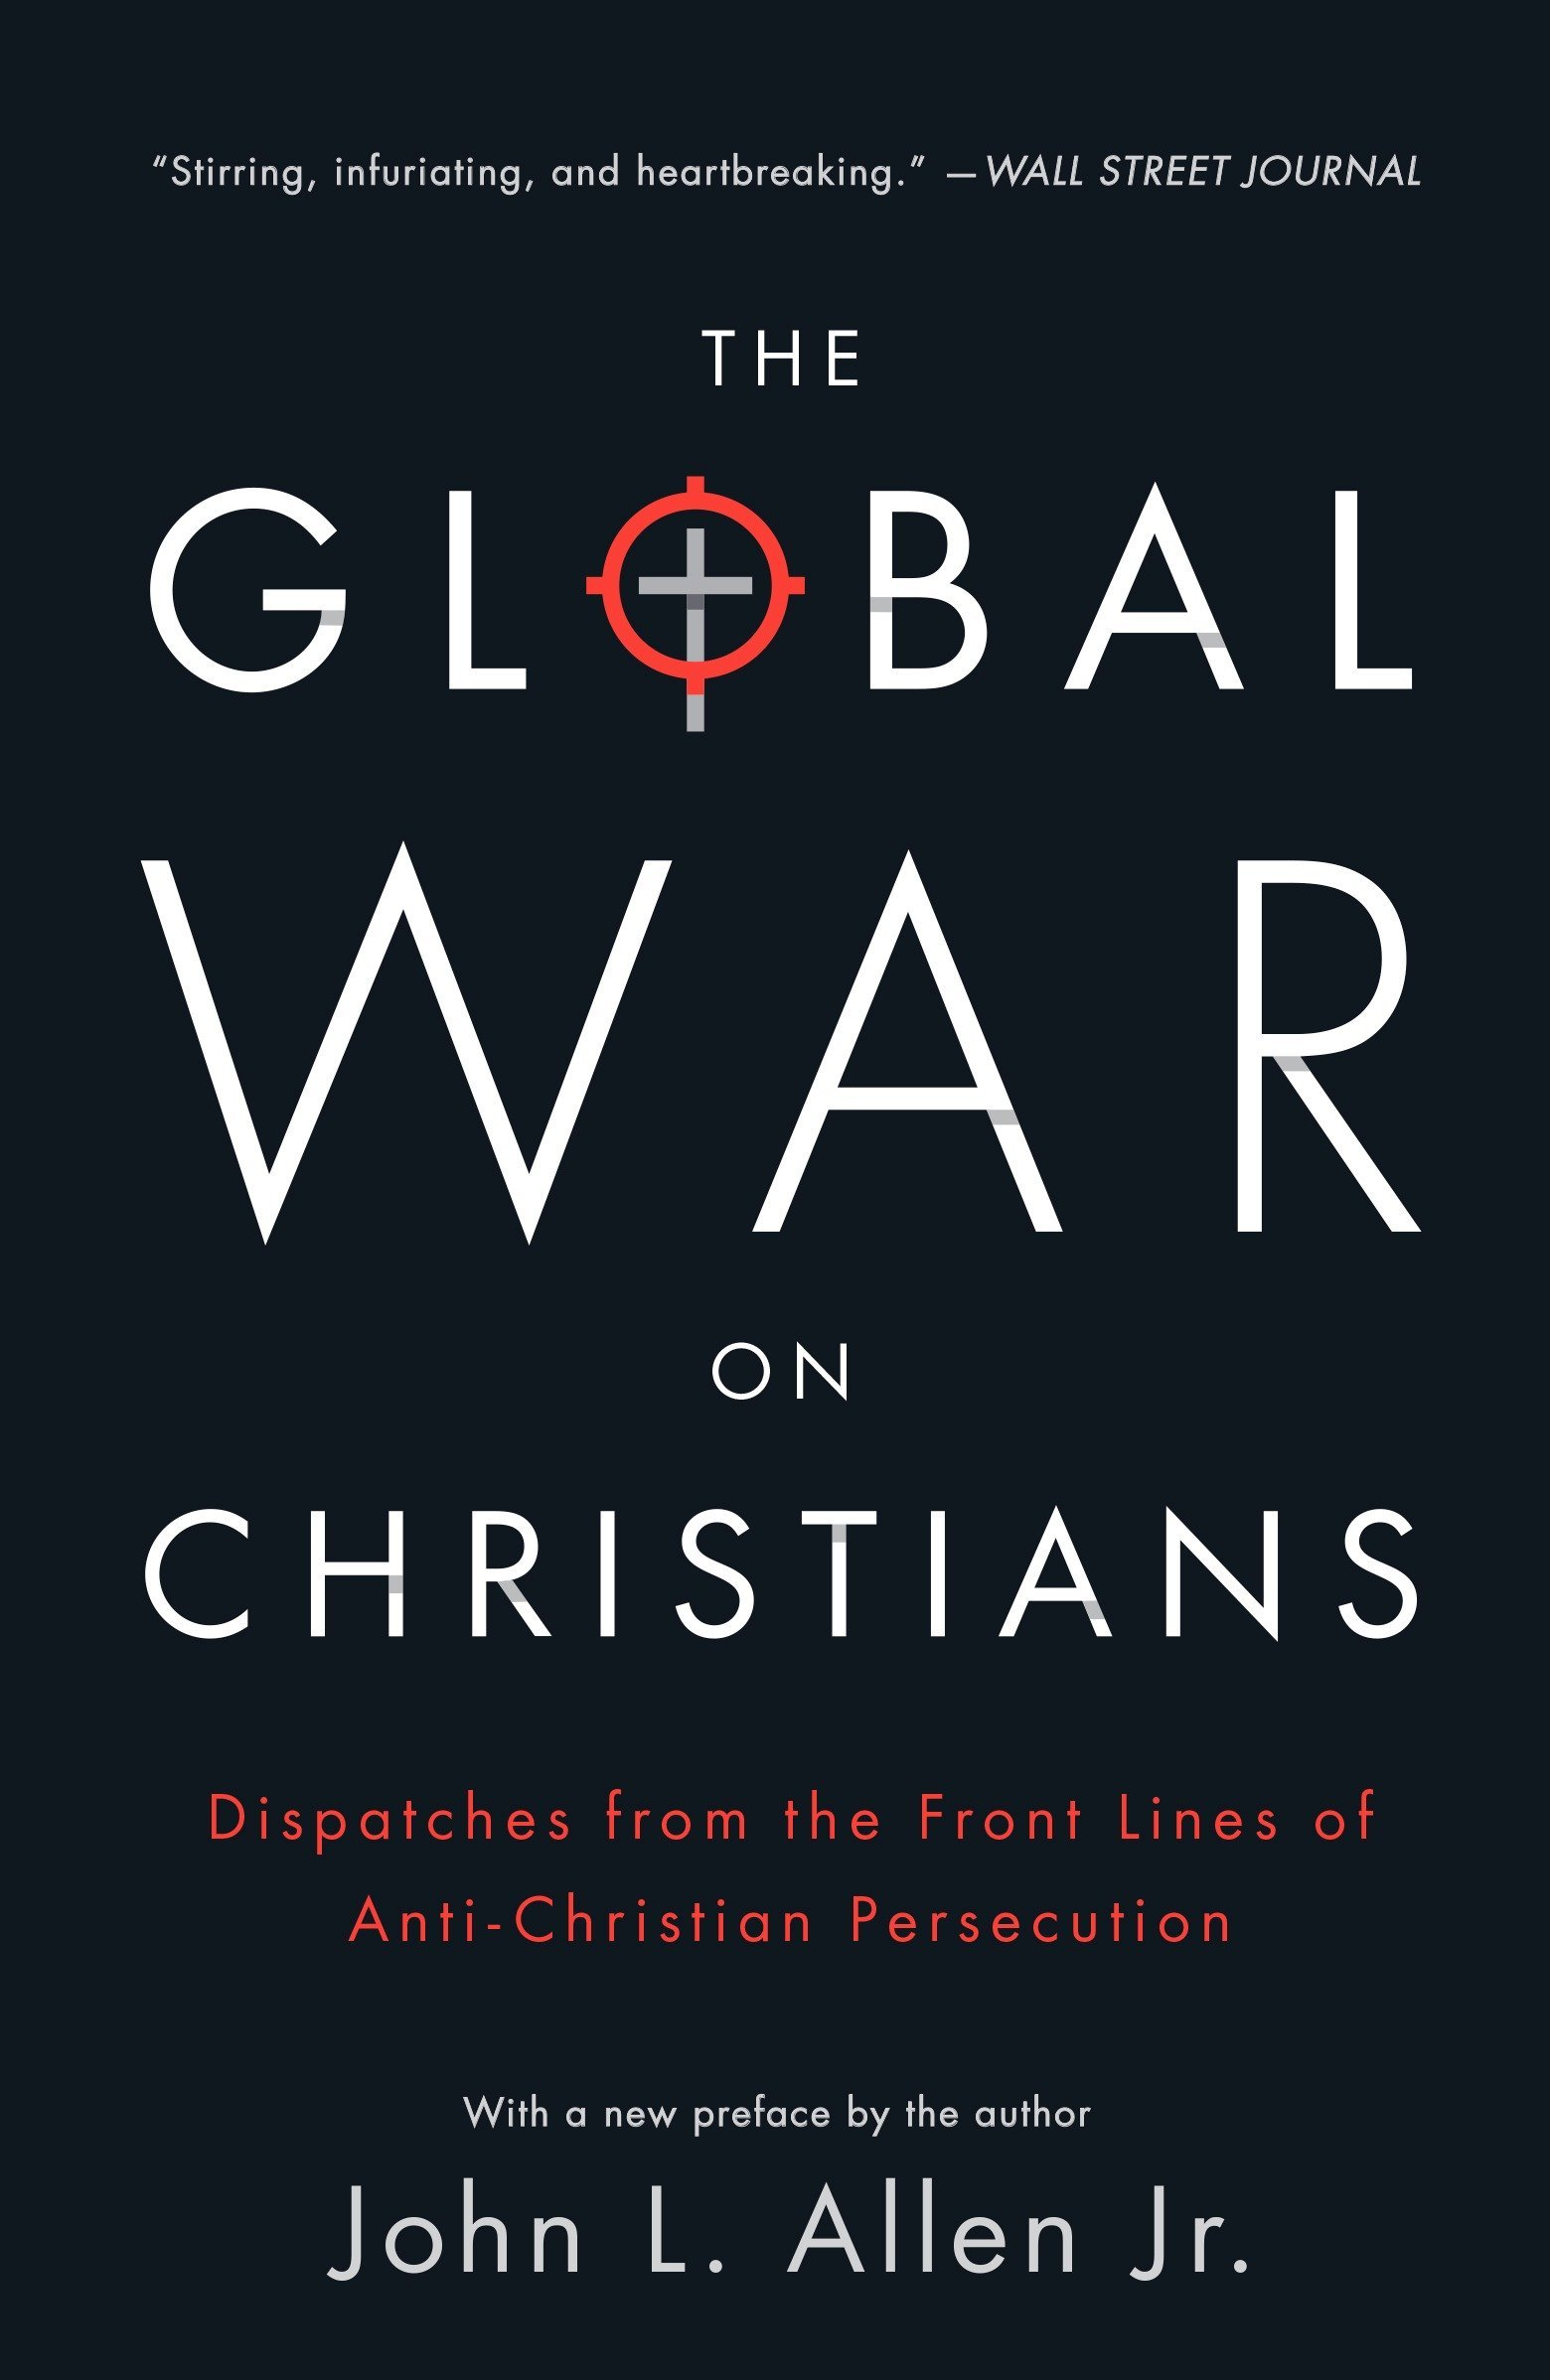 The Global War on Christians: Dispatches from the Front